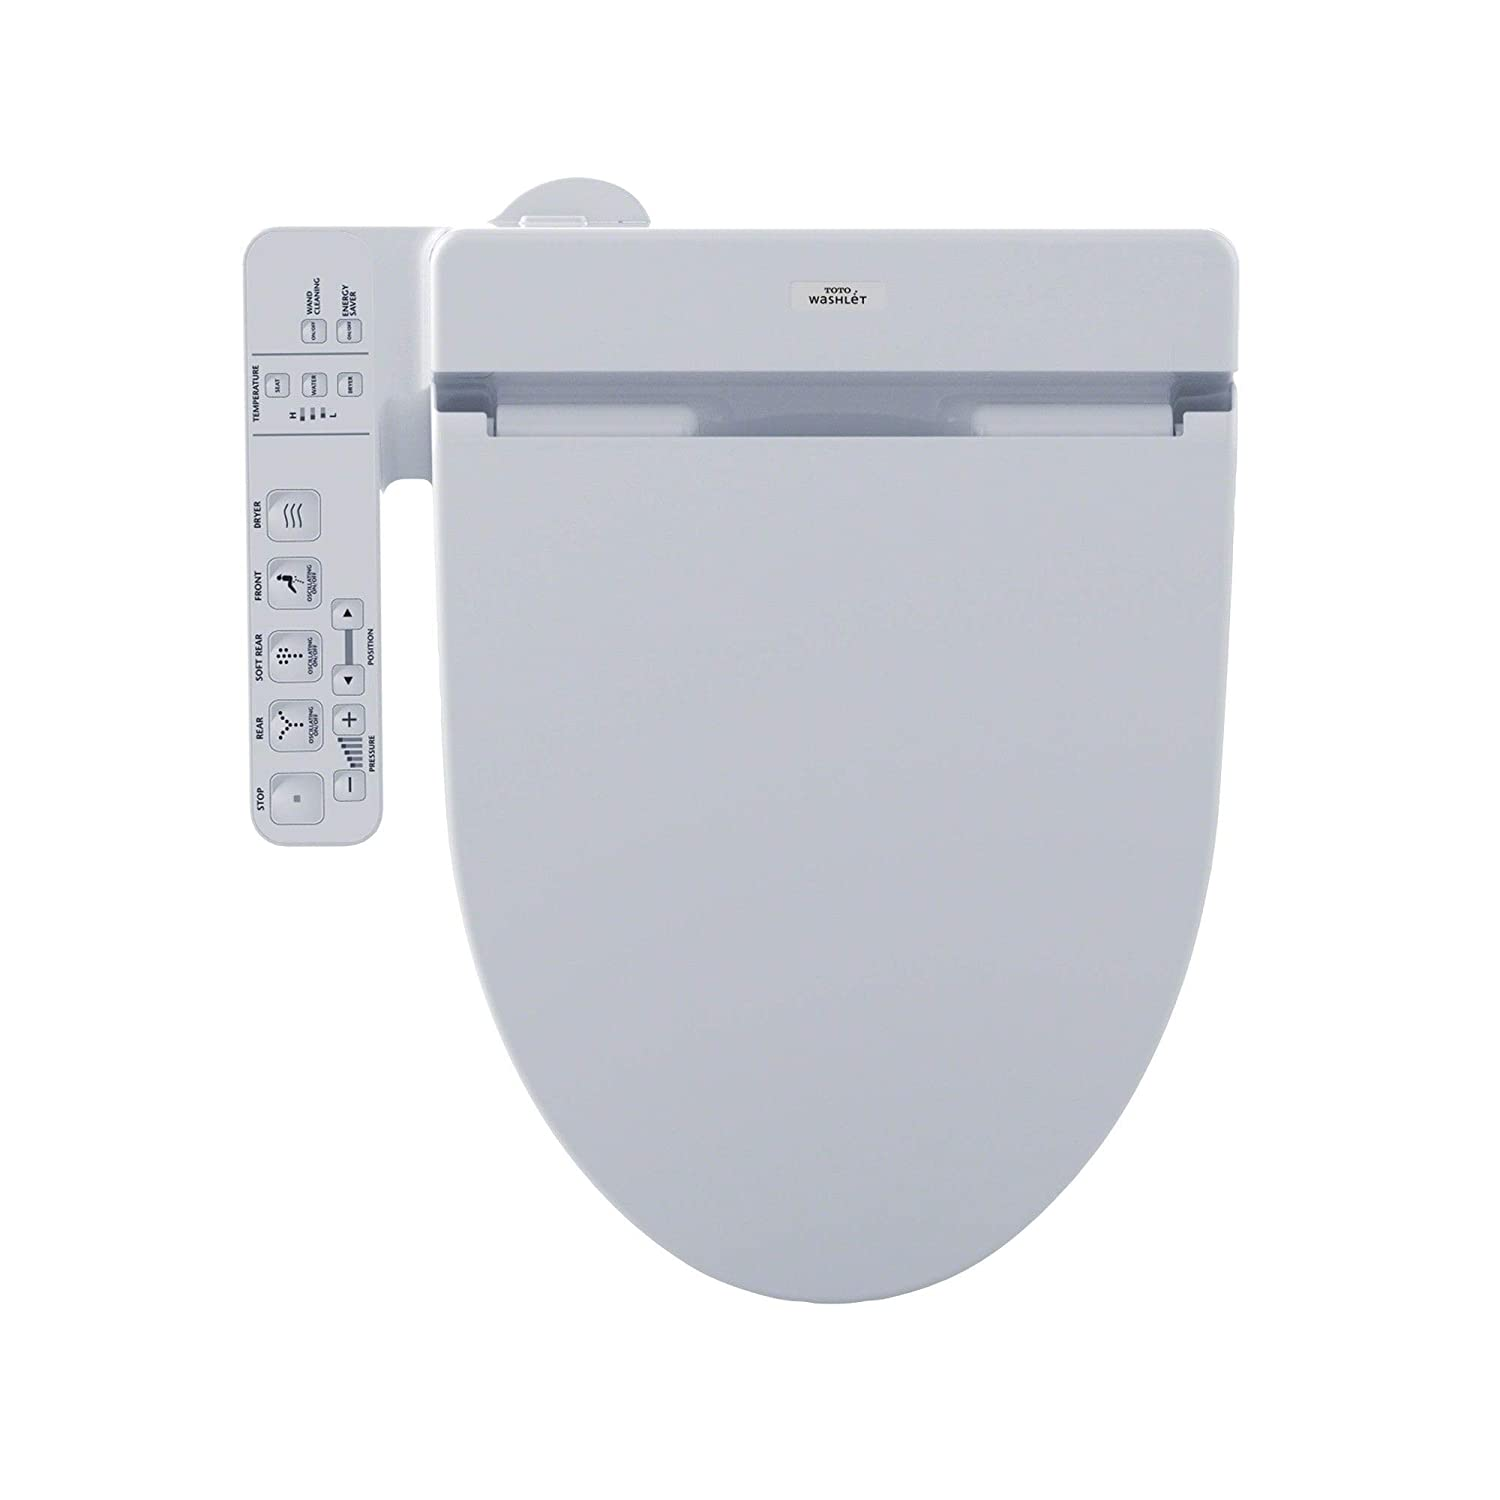 Toto C100 Elongated Bidet Seat SW2034T20#01 Cotton White with Remote Control